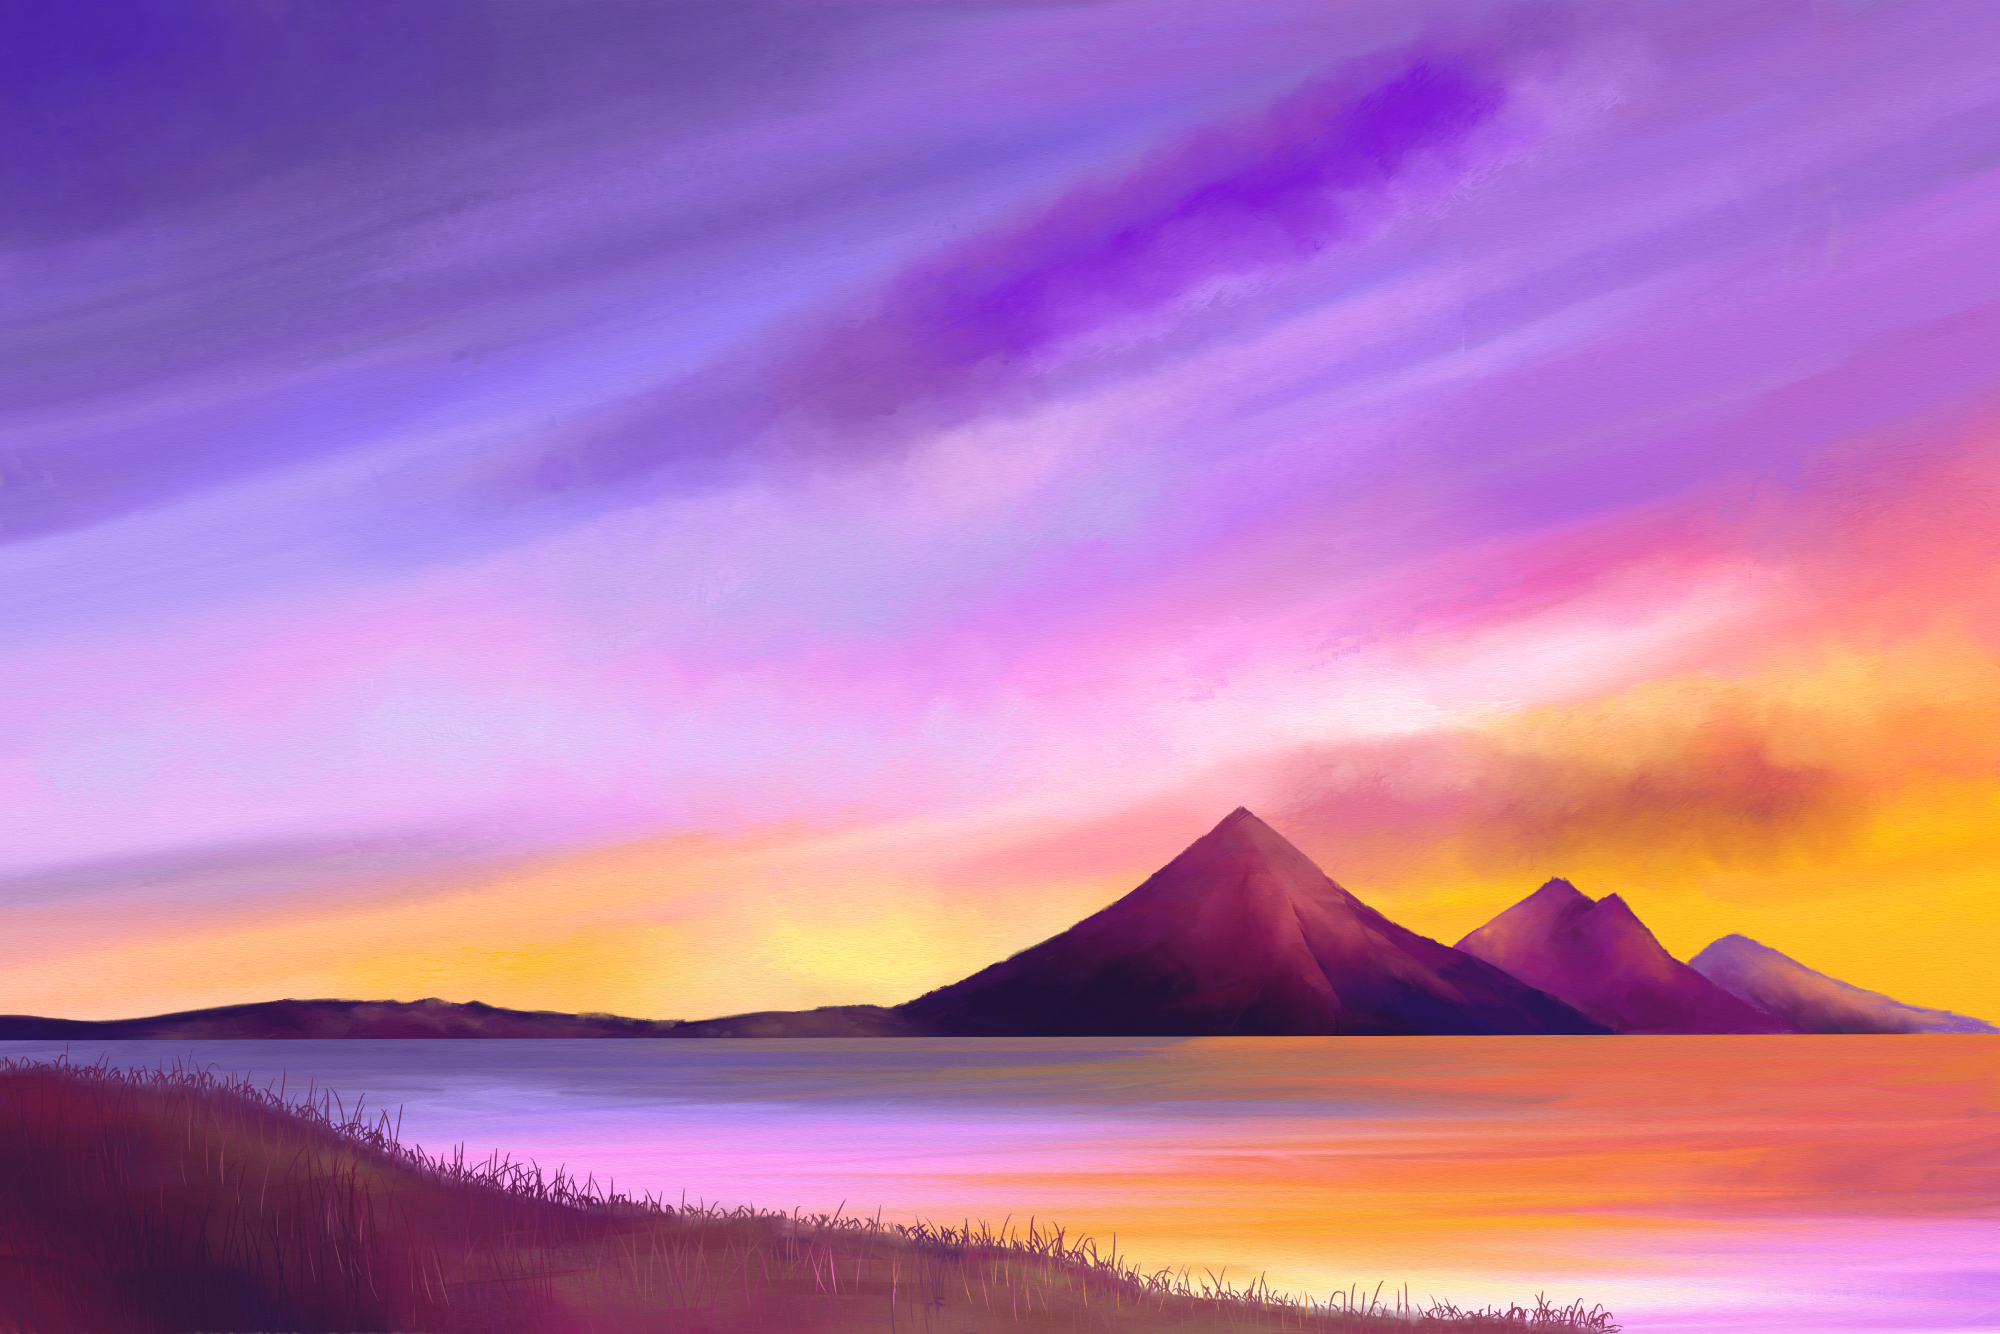 Digital painting of a lake and mountains in the evening sun